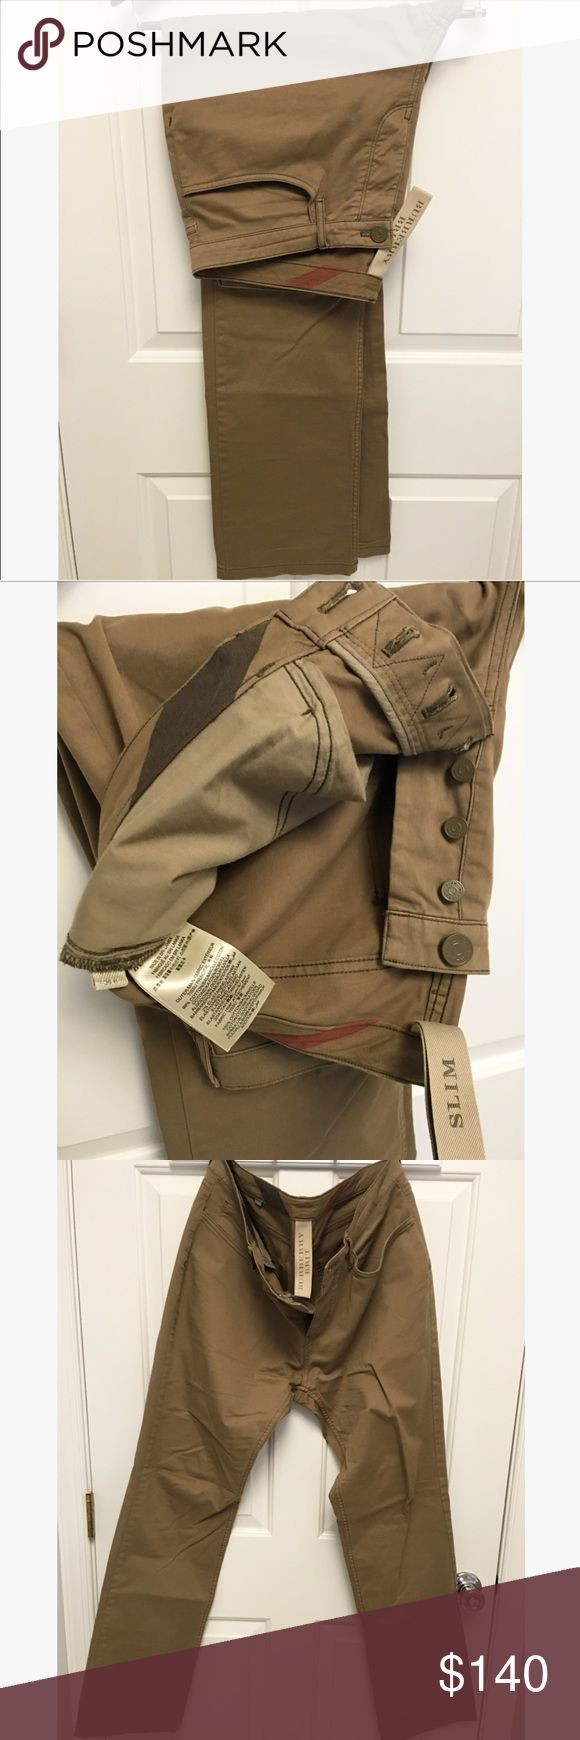 Burberry Slim Fit Chino-khaki Like new and only worn once. Mint condition. Slim fit Burberry cotton twill chino in khaki brown color. Fits true to size and sold just by waist size. Belt loops banded waist zip fly button closure. Two back pockets with Burberry emblem on one. Burberry Pants Chinos & Khakis